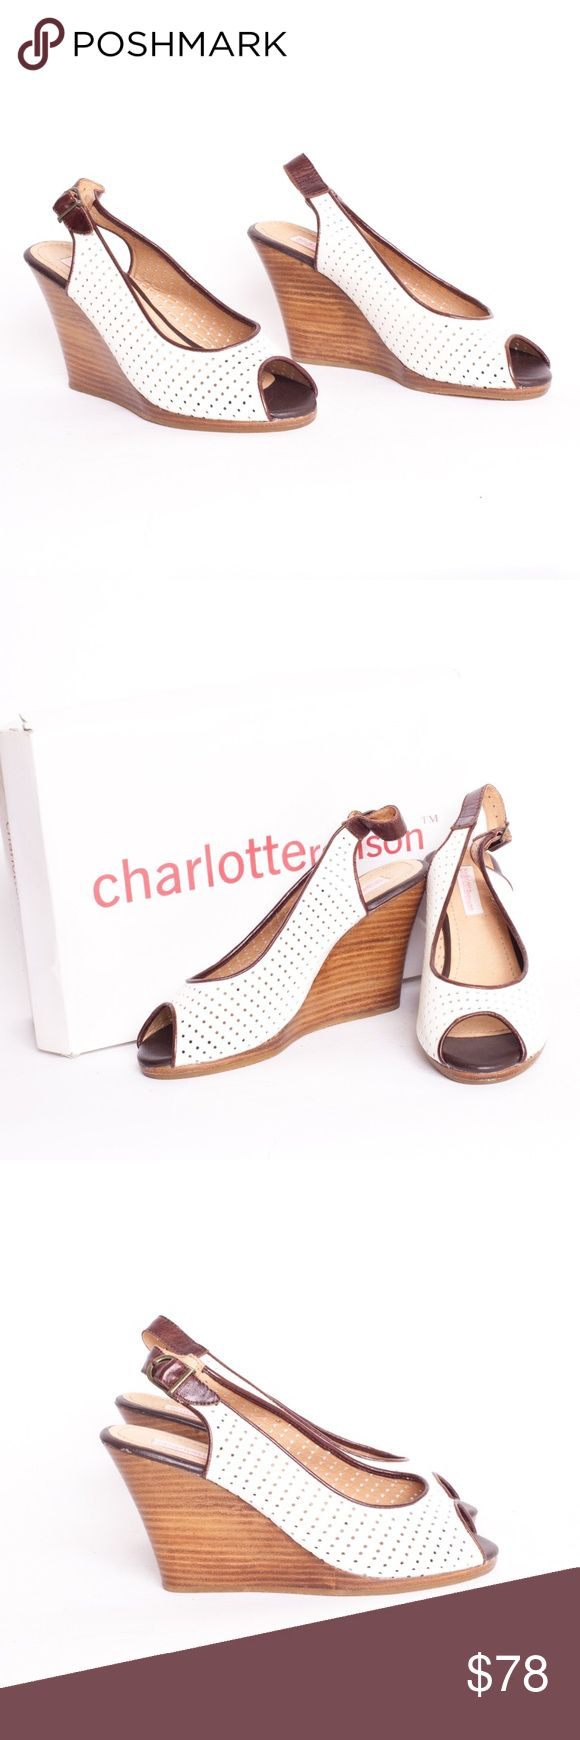 """Charlotte Ronson Drew Lewis Ivory Leather Wedge 8 Charlotte Ronson Drew Lewis Ivory Leather Wedge in Perforated Leather Size 8. Originally purchased from Urban Outfitters. The perfect Summer Peeptoe with slingback buckle. Ivory Leather upper. Rubber sole. 3.5"""" platform. Excellent pre-owned condition Charlotte Ronson Shoes Wedges"""